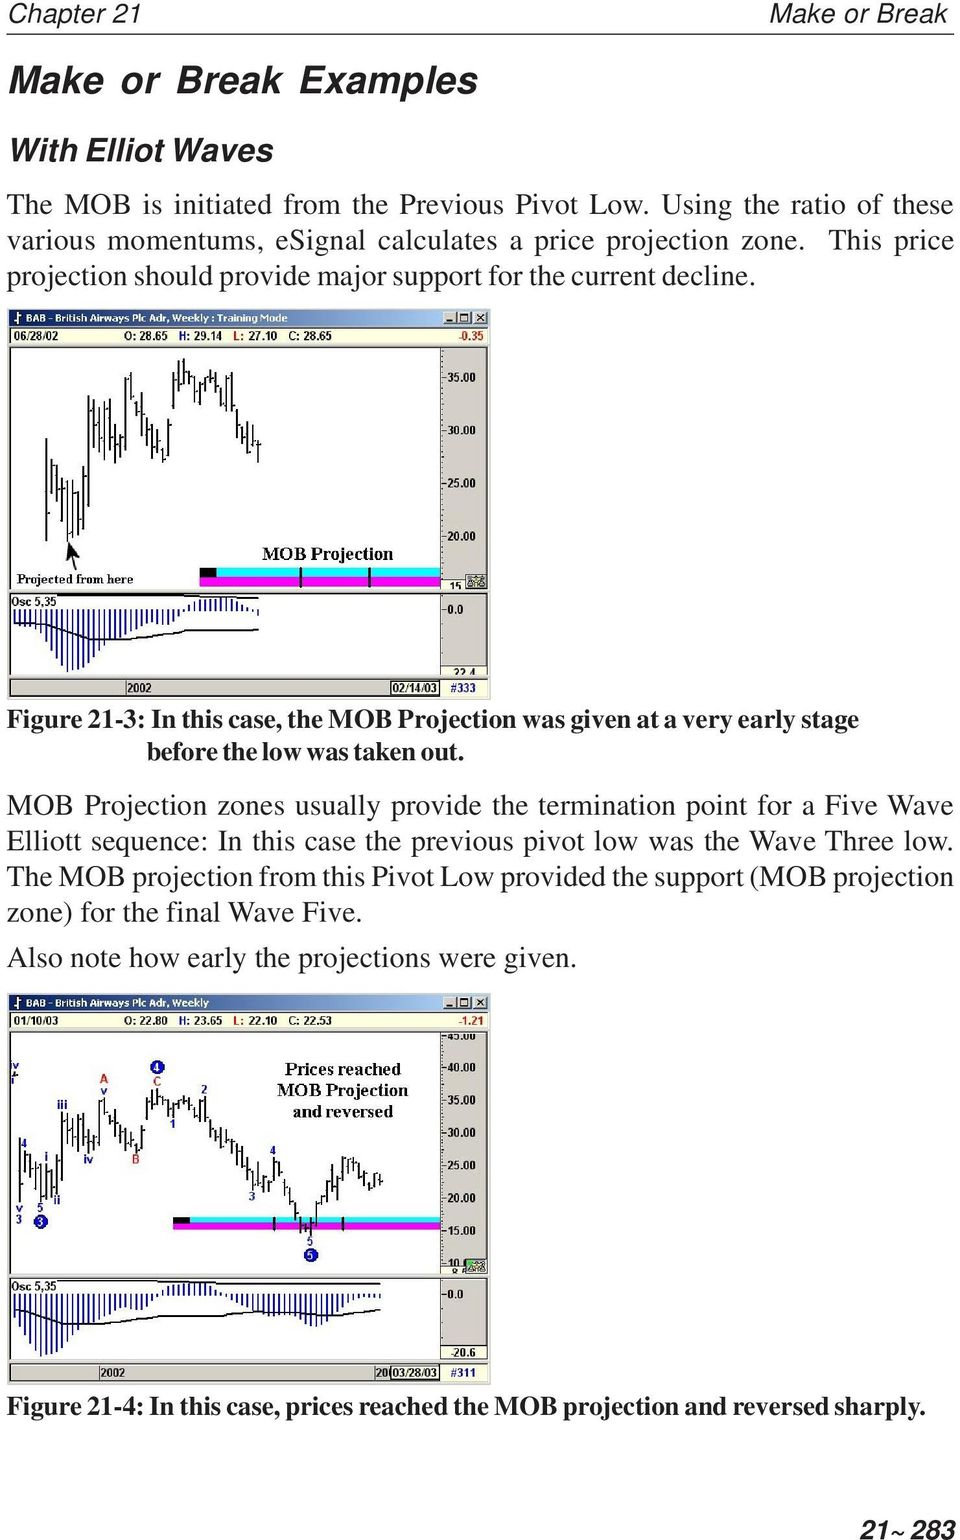 MOB Projection zones usually provide the termination point for a Five Wave Elliott sequence: In this case the previous pivot low was the Wave Three low.